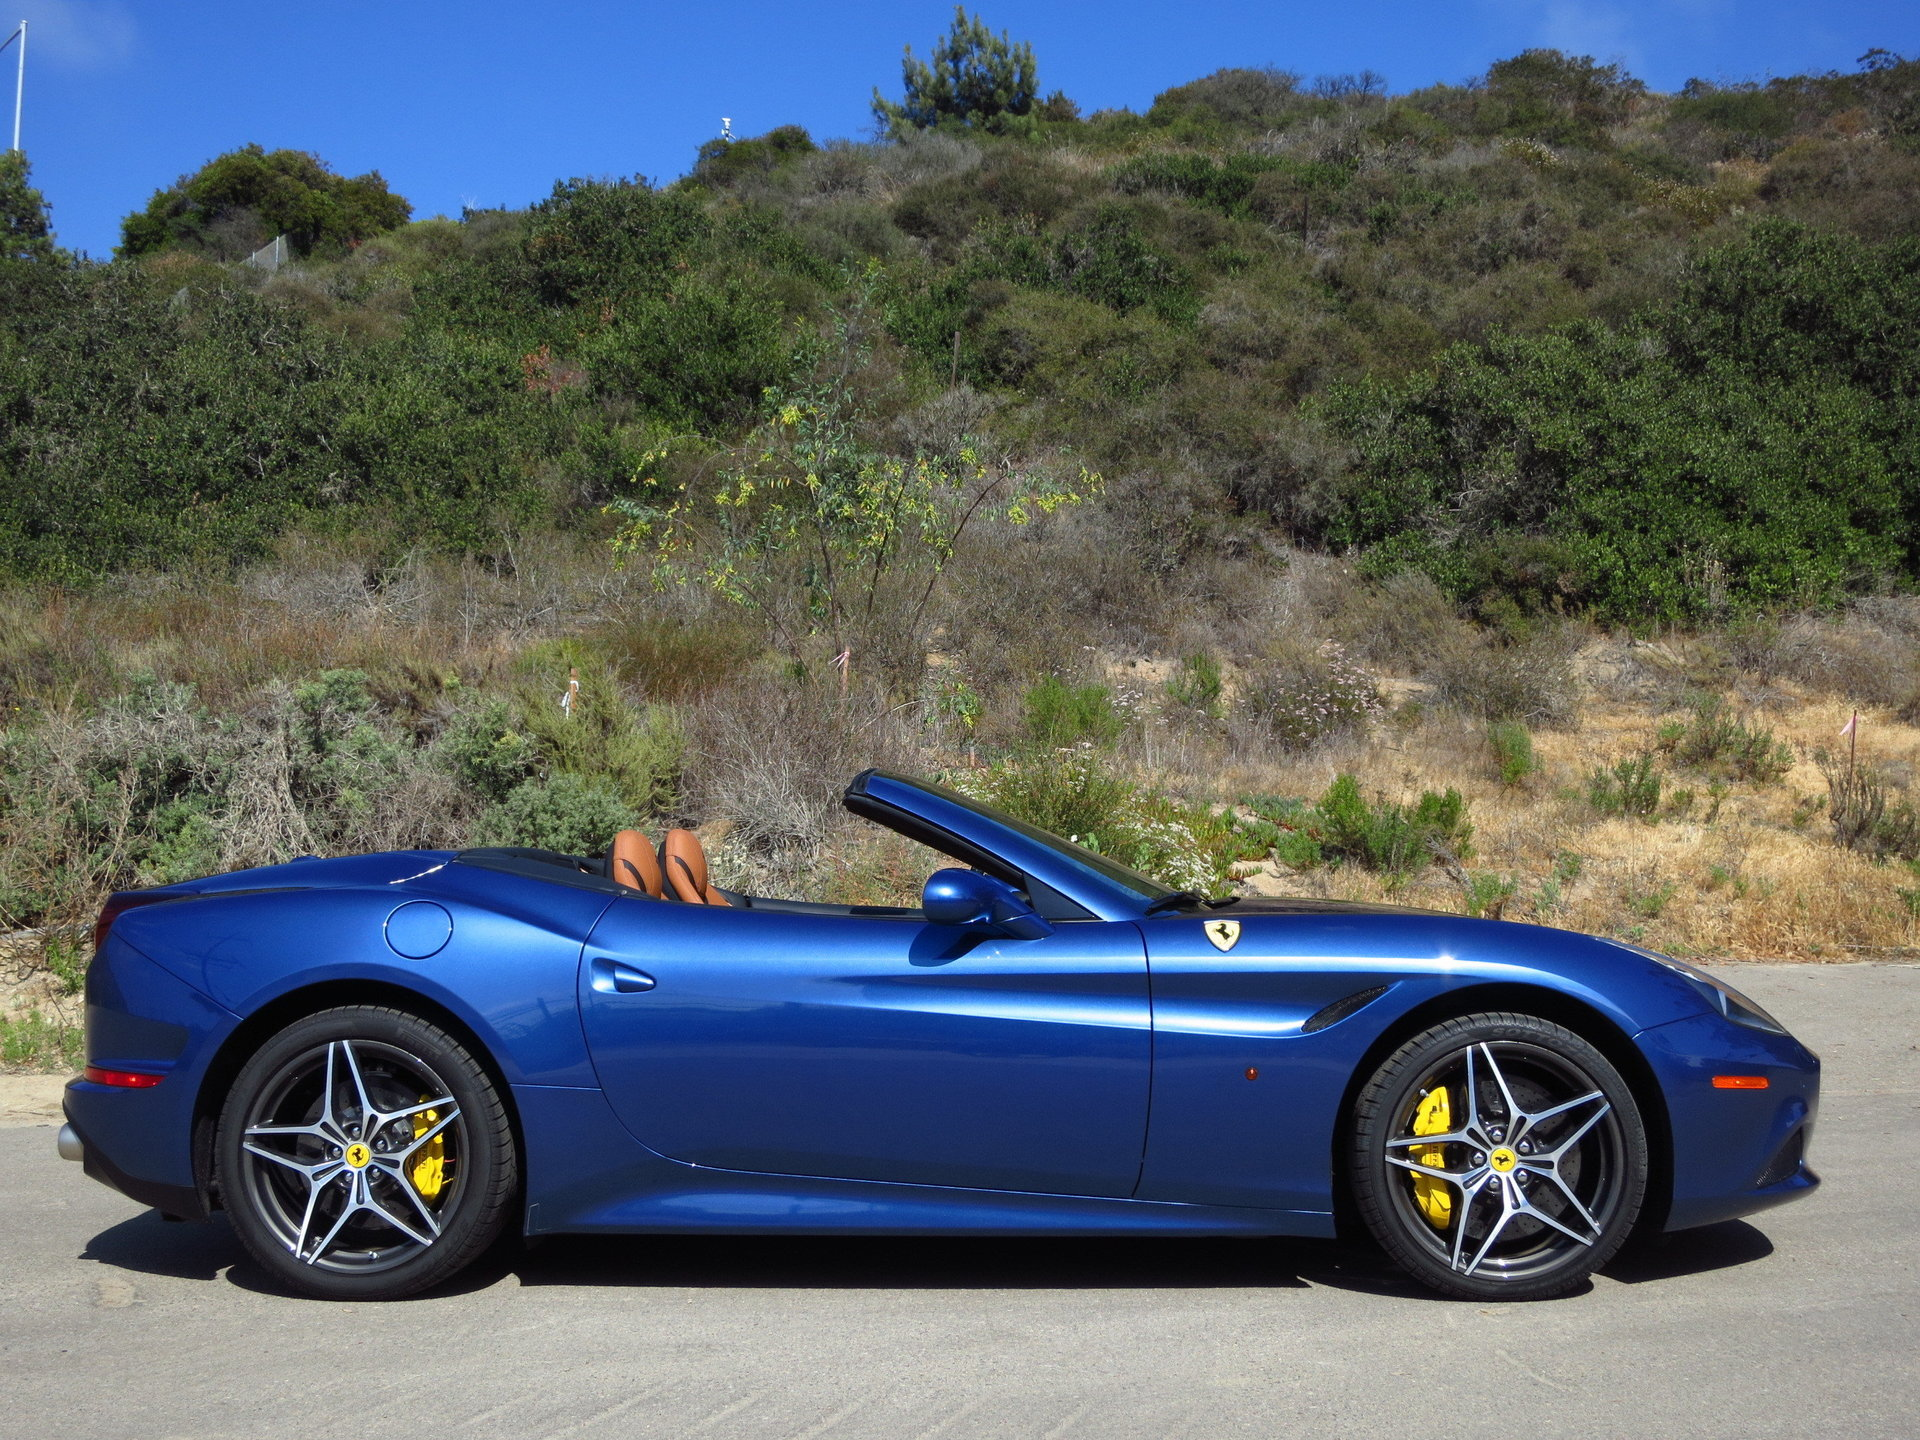 2017 ferrari california t for sale 90169 mcg. Black Bedroom Furniture Sets. Home Design Ideas